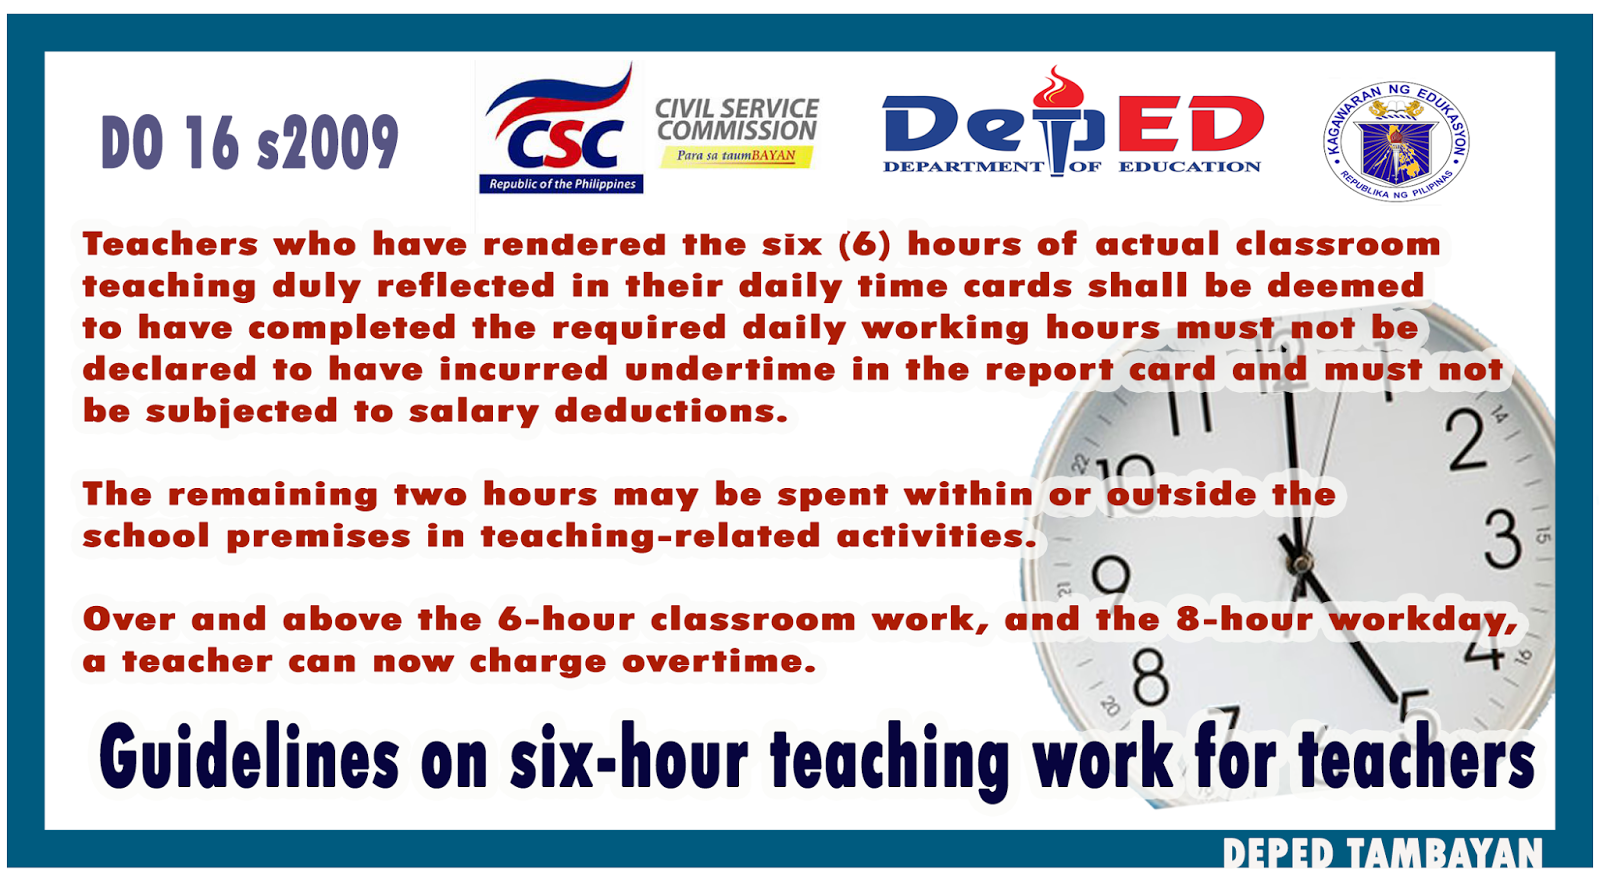 teachers can now claim overtime pay deped tambayan ph rh depedtambayanph blogspot com Deped Philippines Fake News Learners Information System Deped Philippines